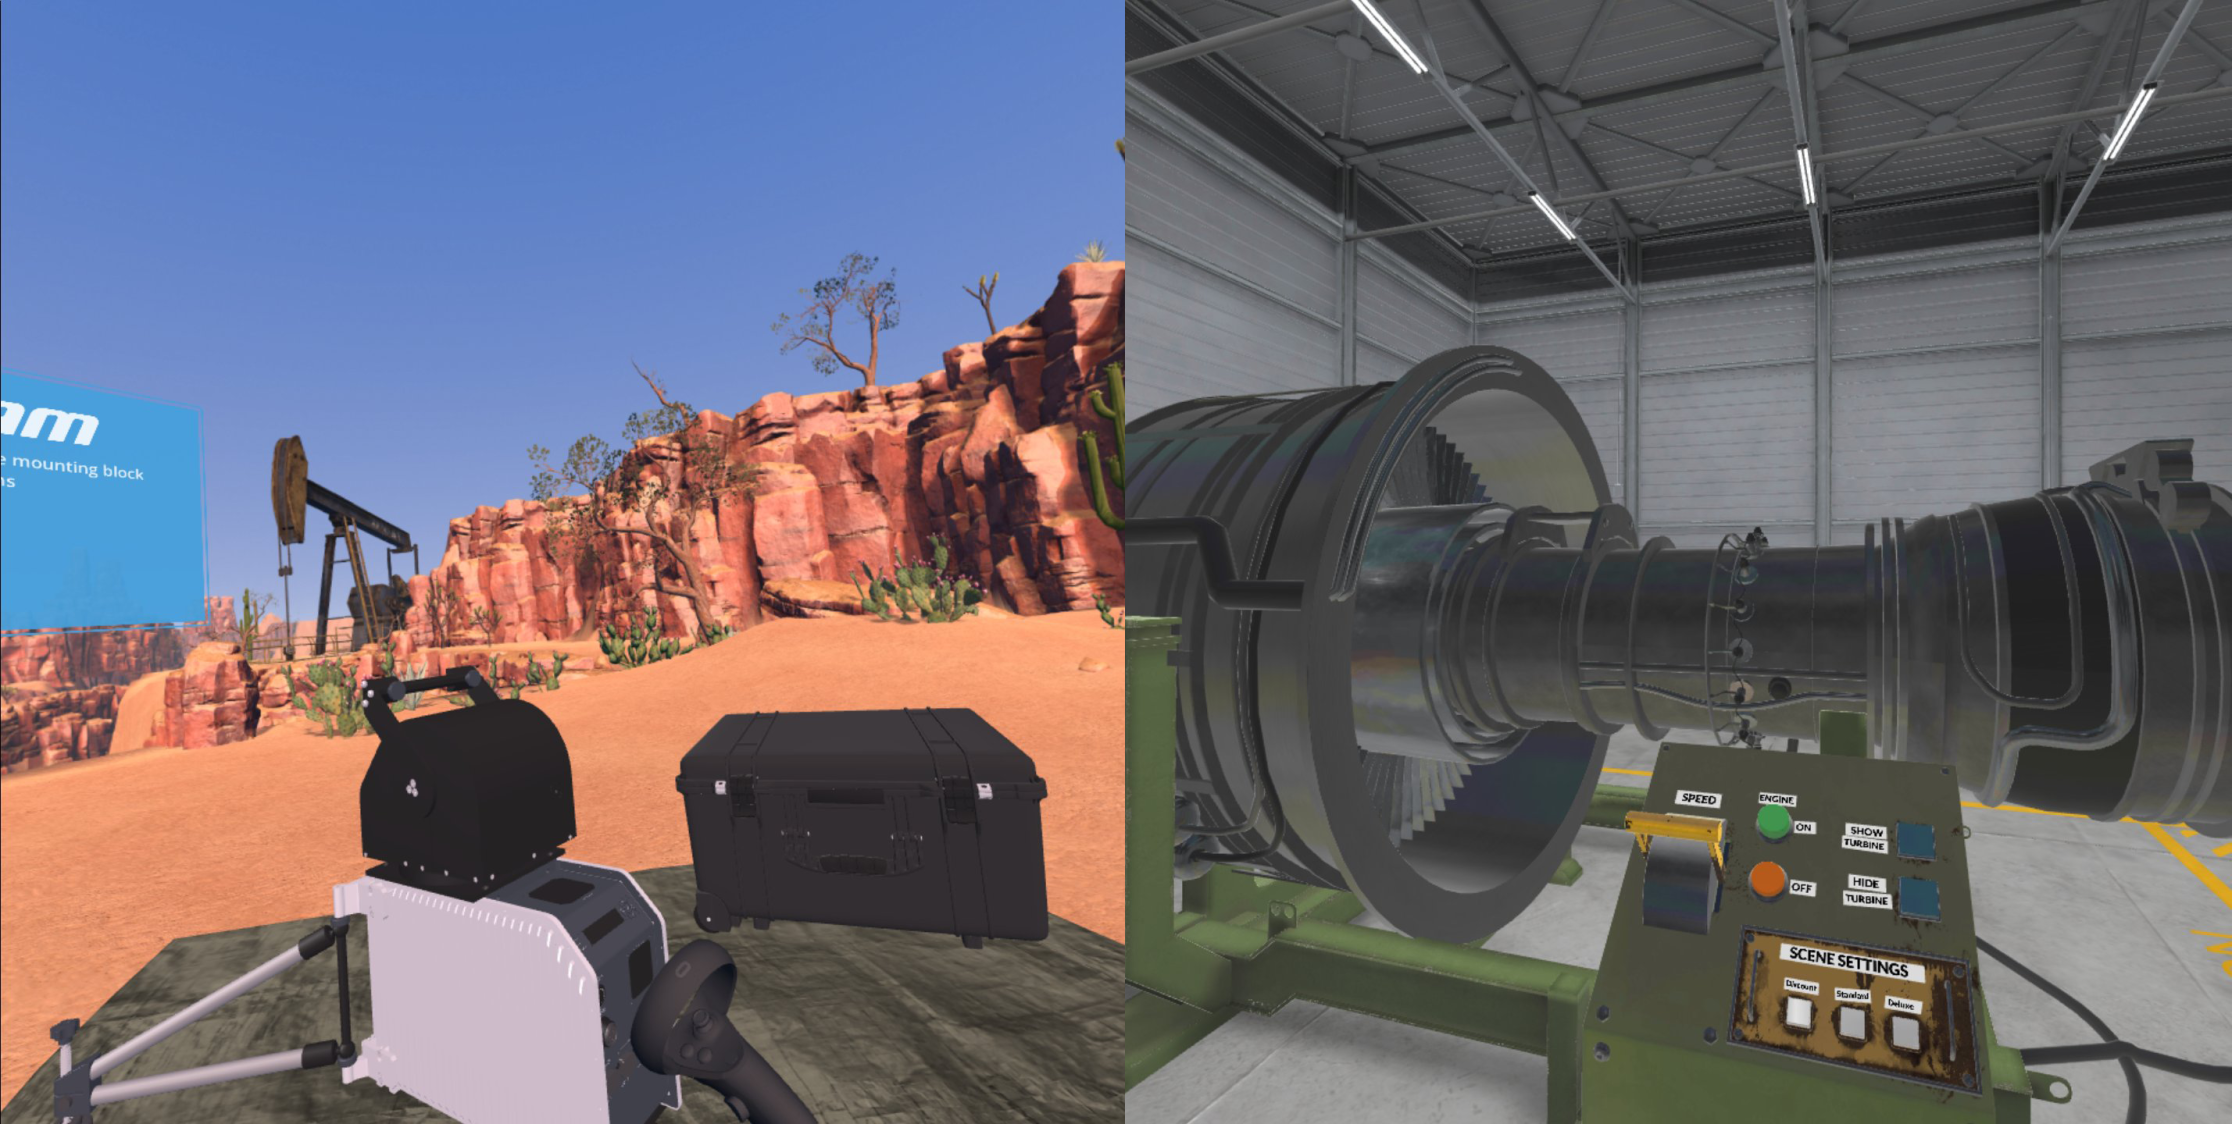 Even though Oculus Quest has limited performance, it is possible to achieve a high visual fidelity. On the left you can see an image from Kanda's Satcom Explorer VR experience, and on the right, you can see an image from Kanda's Turbine Experience VR. Both screenshots are taken from inside an Oculus Quest.